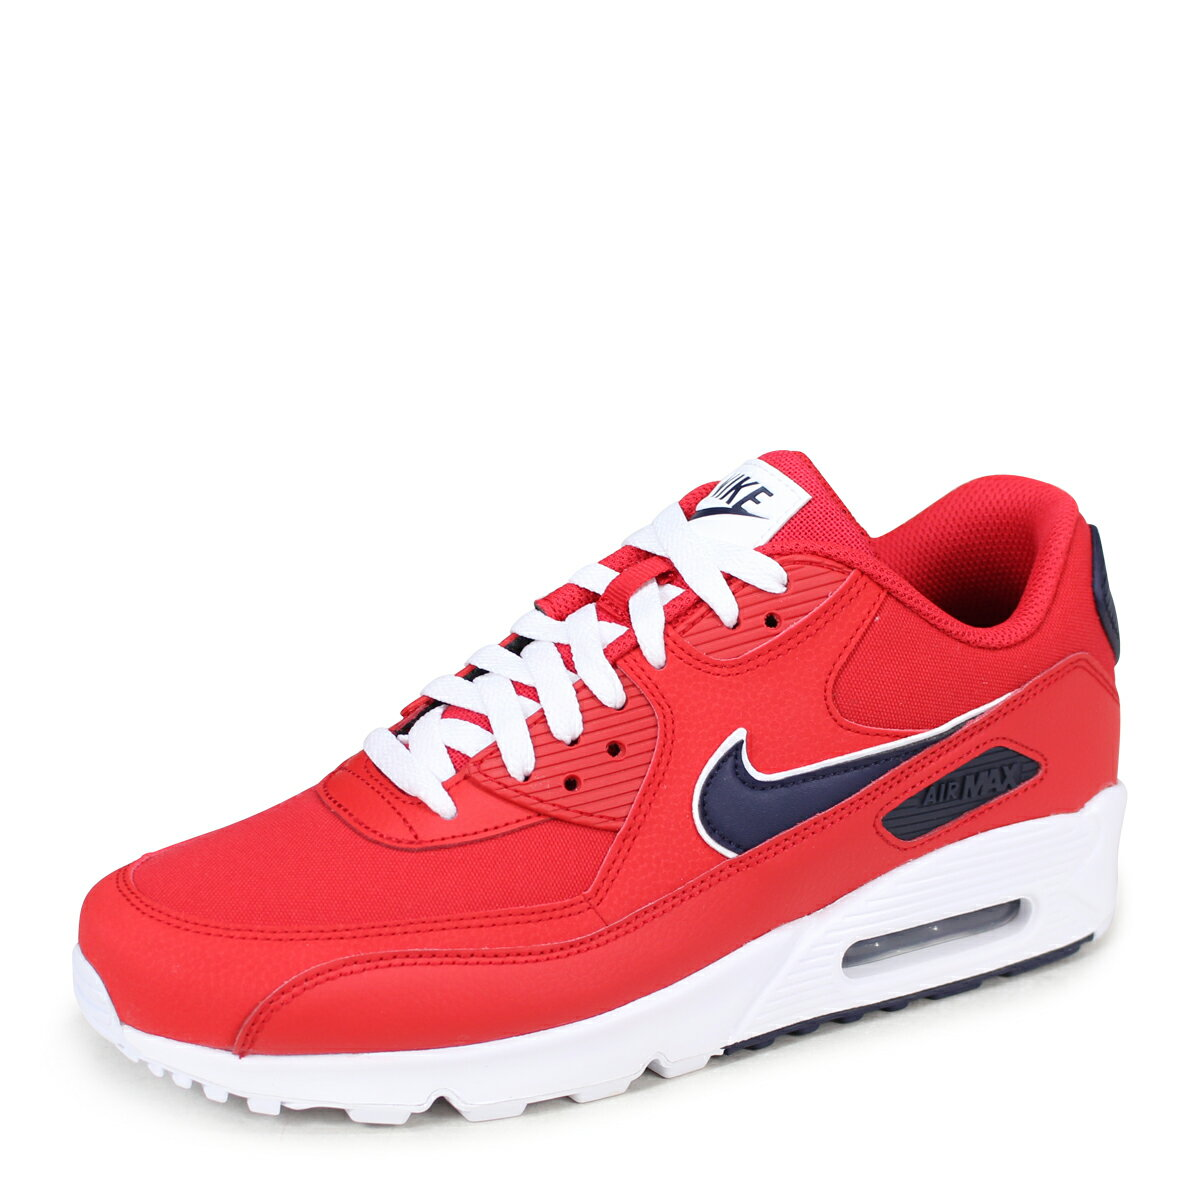 36cdb234794 NIKE AIR MAX 90 ESSENTIAL Kie Ney AMAX 90 essential sneakers men AJ1285-601  red  load planned Shinnyu load in reservation product 6 28 containing   186